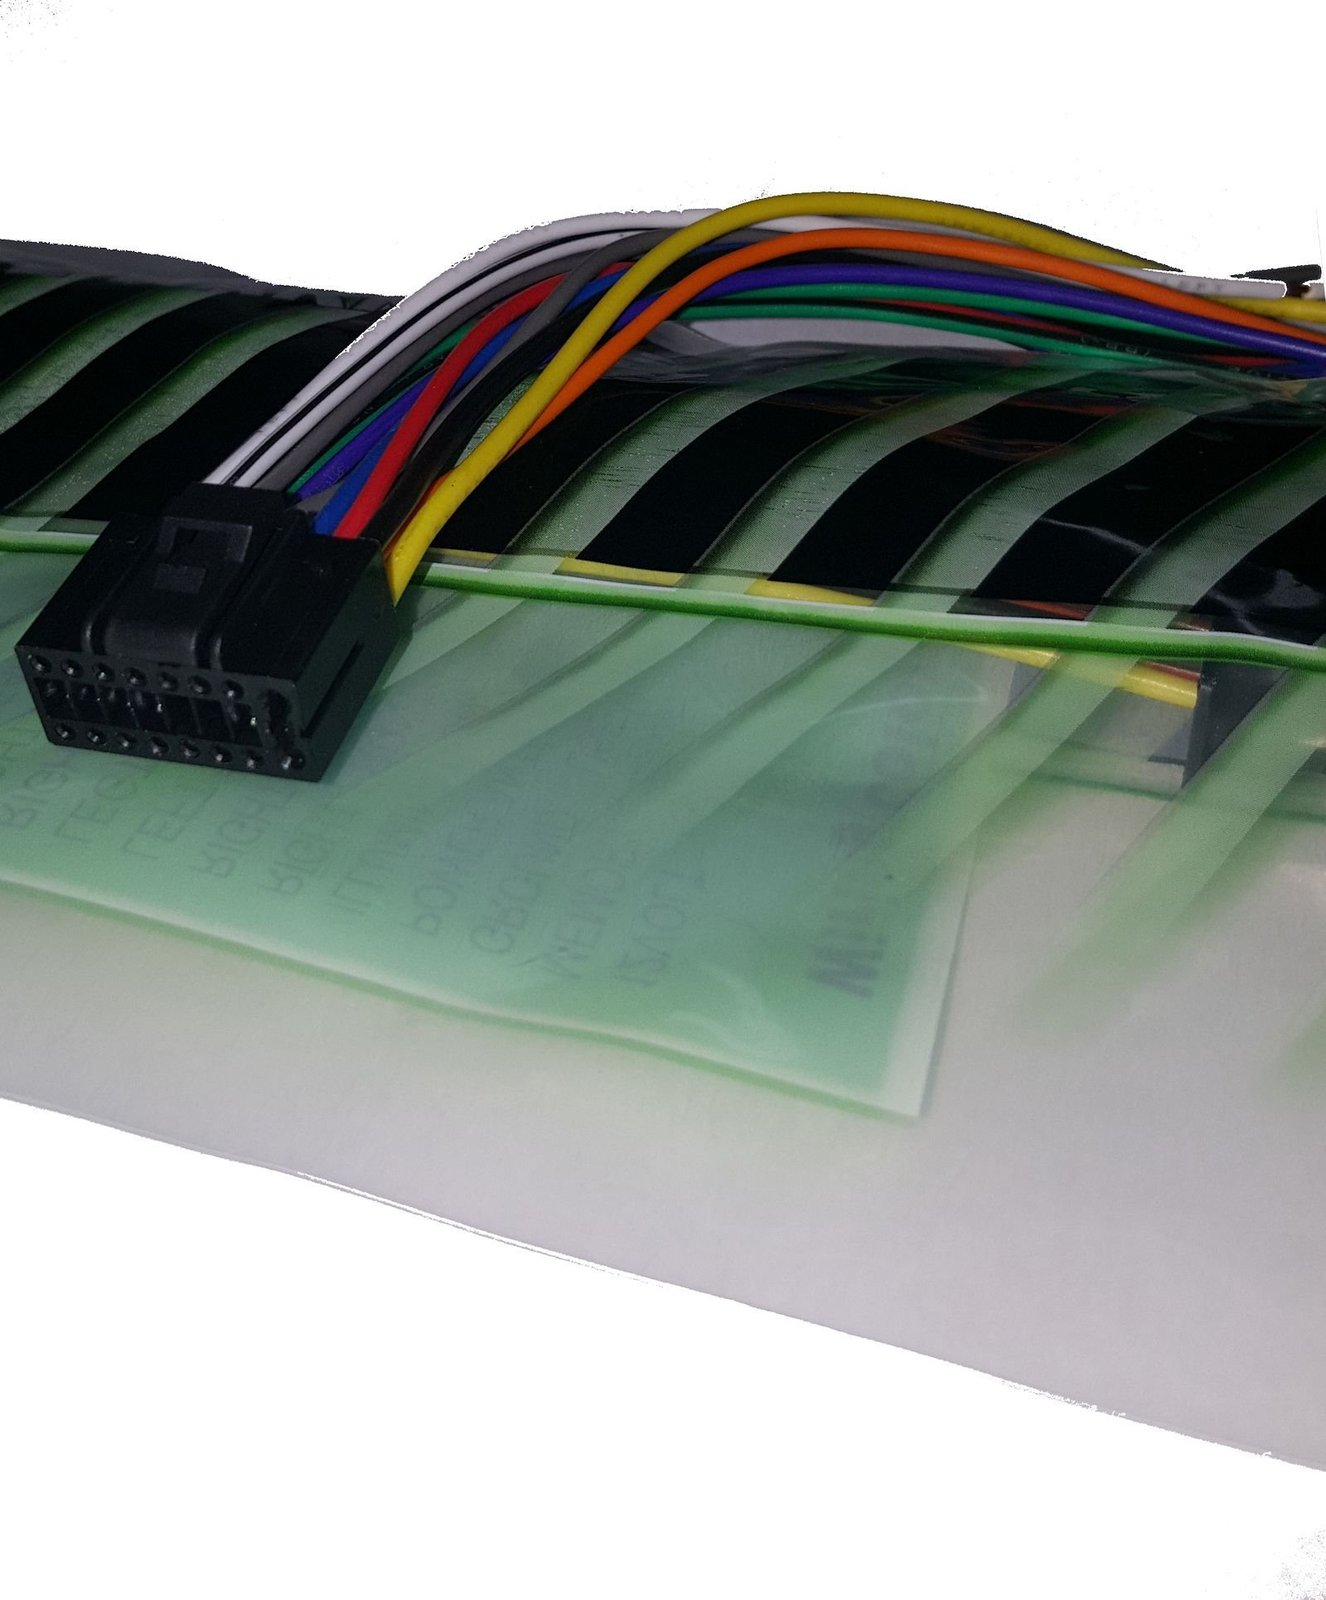 hight resolution of kenwood ddx318 ddx418 dpx308u kdc448u kdcbt848u kdcbt945u wire harness